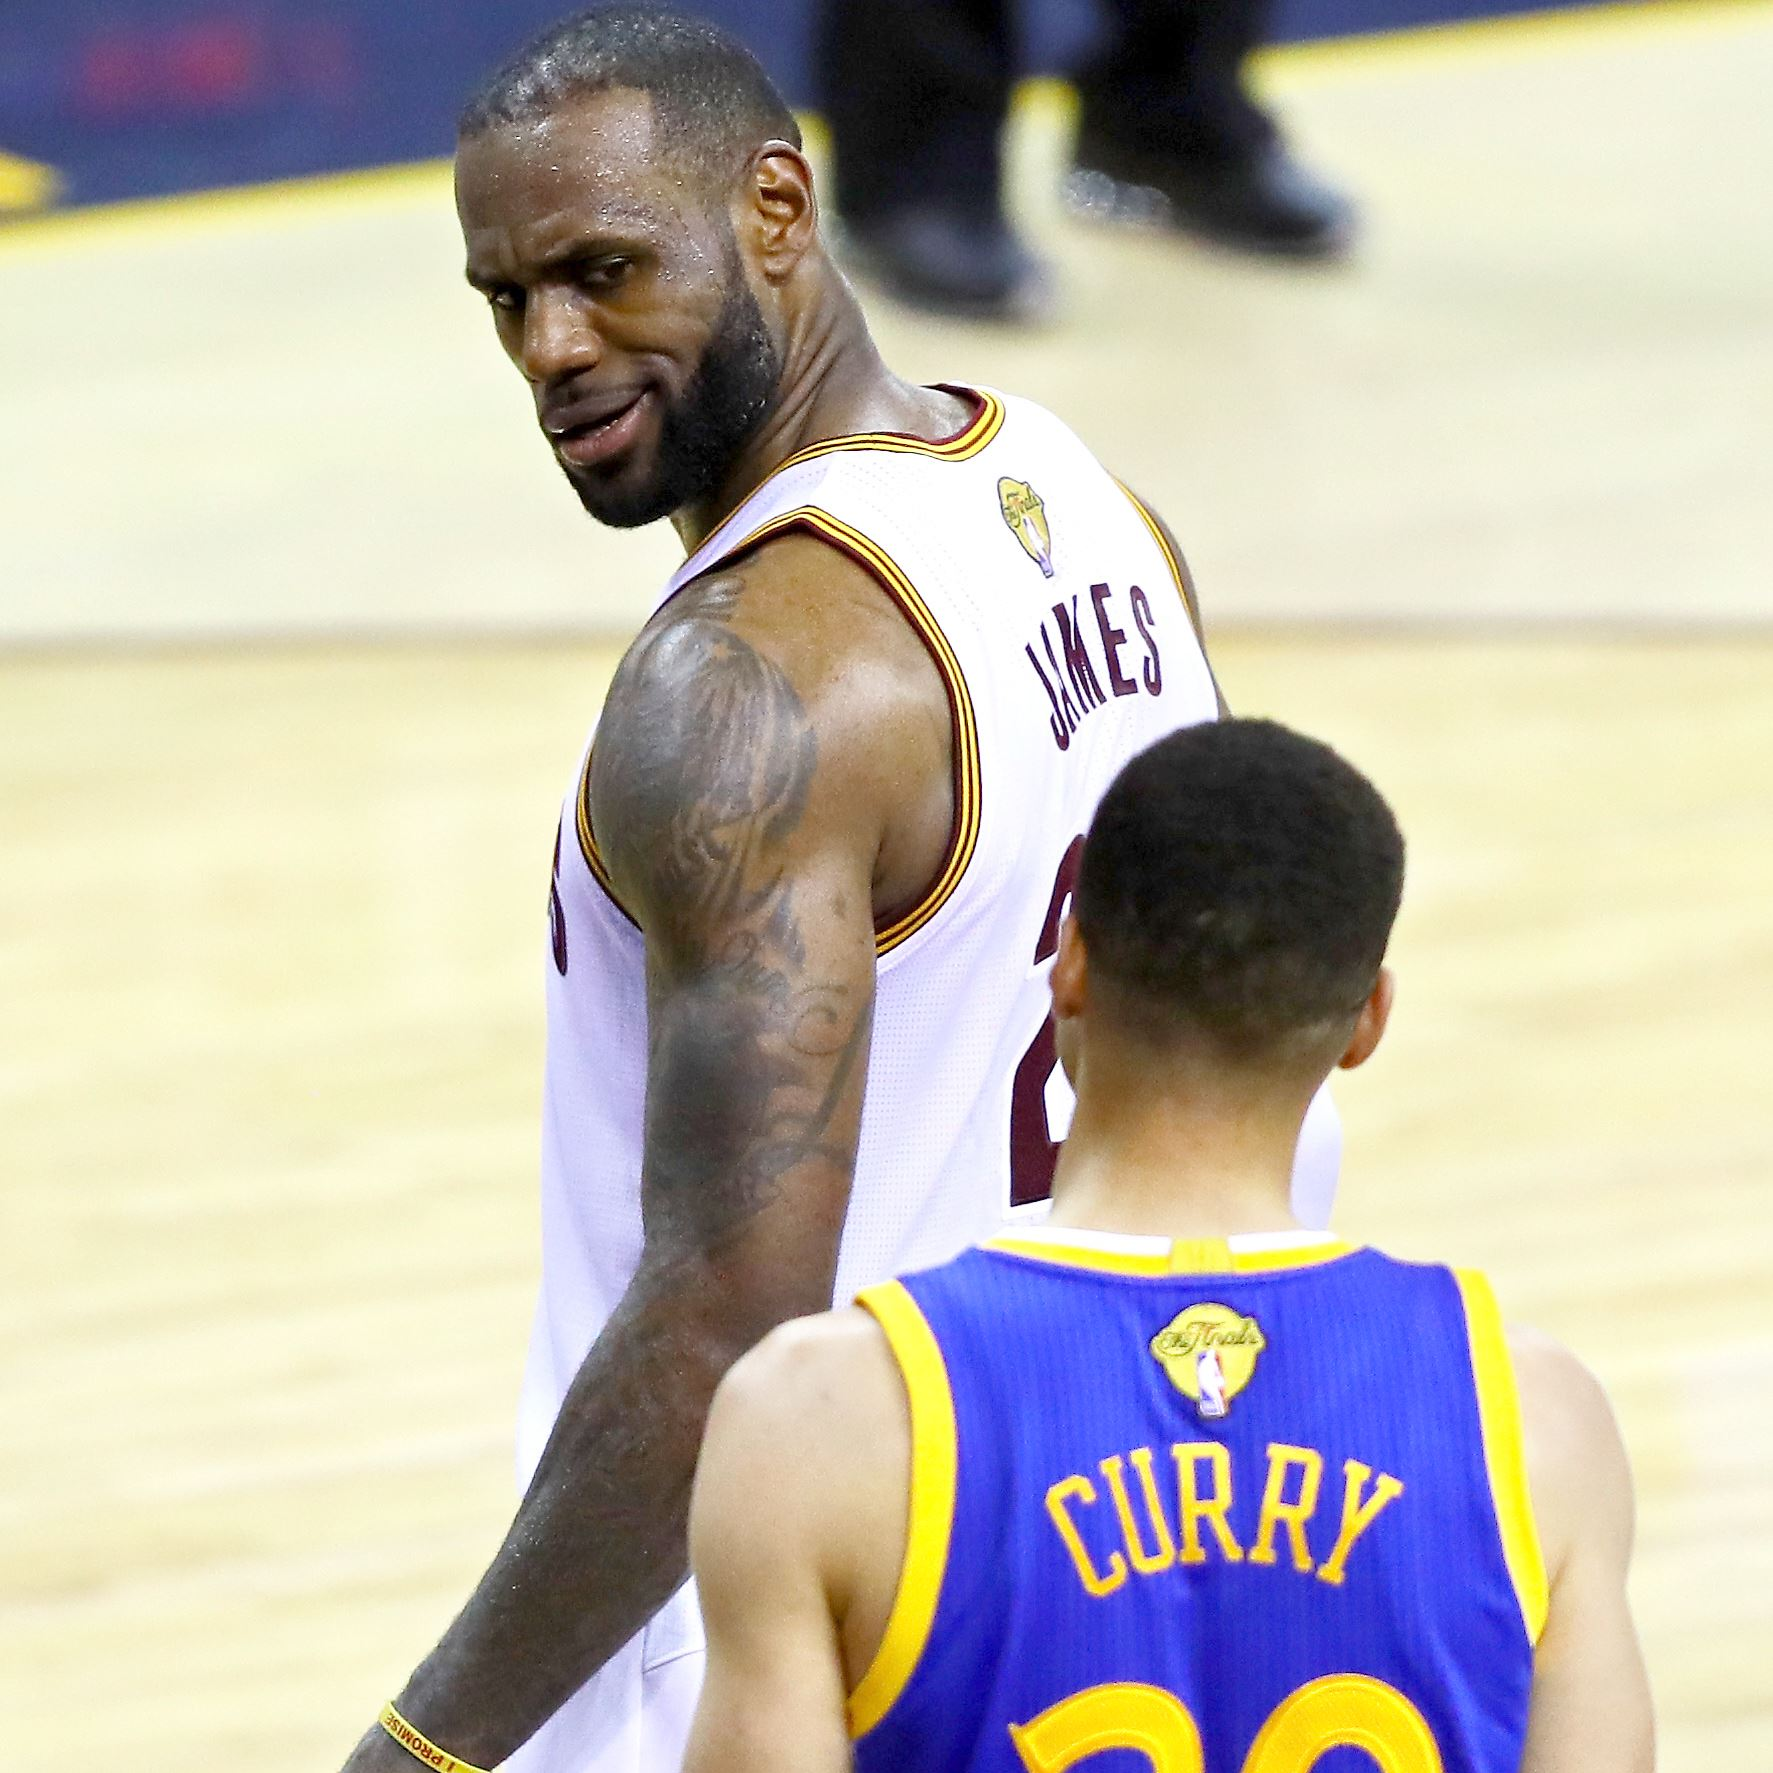 Legacies on the line entering Game 7 of NBA Finals tonight | Pittsburgh Post-Gazette